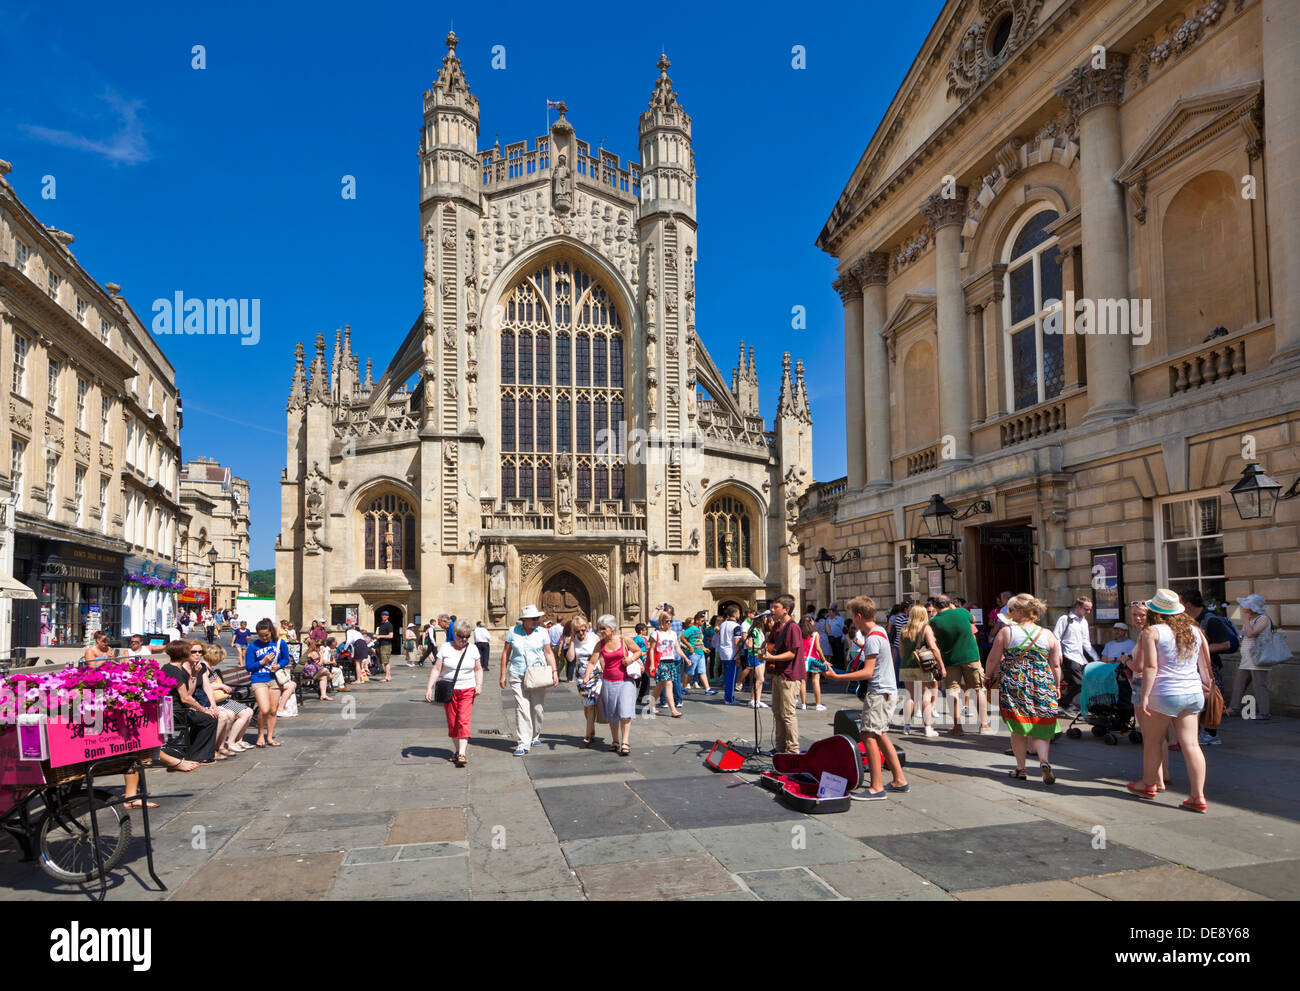 Crowds of people in front of Bath Abbey and entrance to the Pump Rooms Bath city centre Somerset England UK GB EU Europe - Stock Image